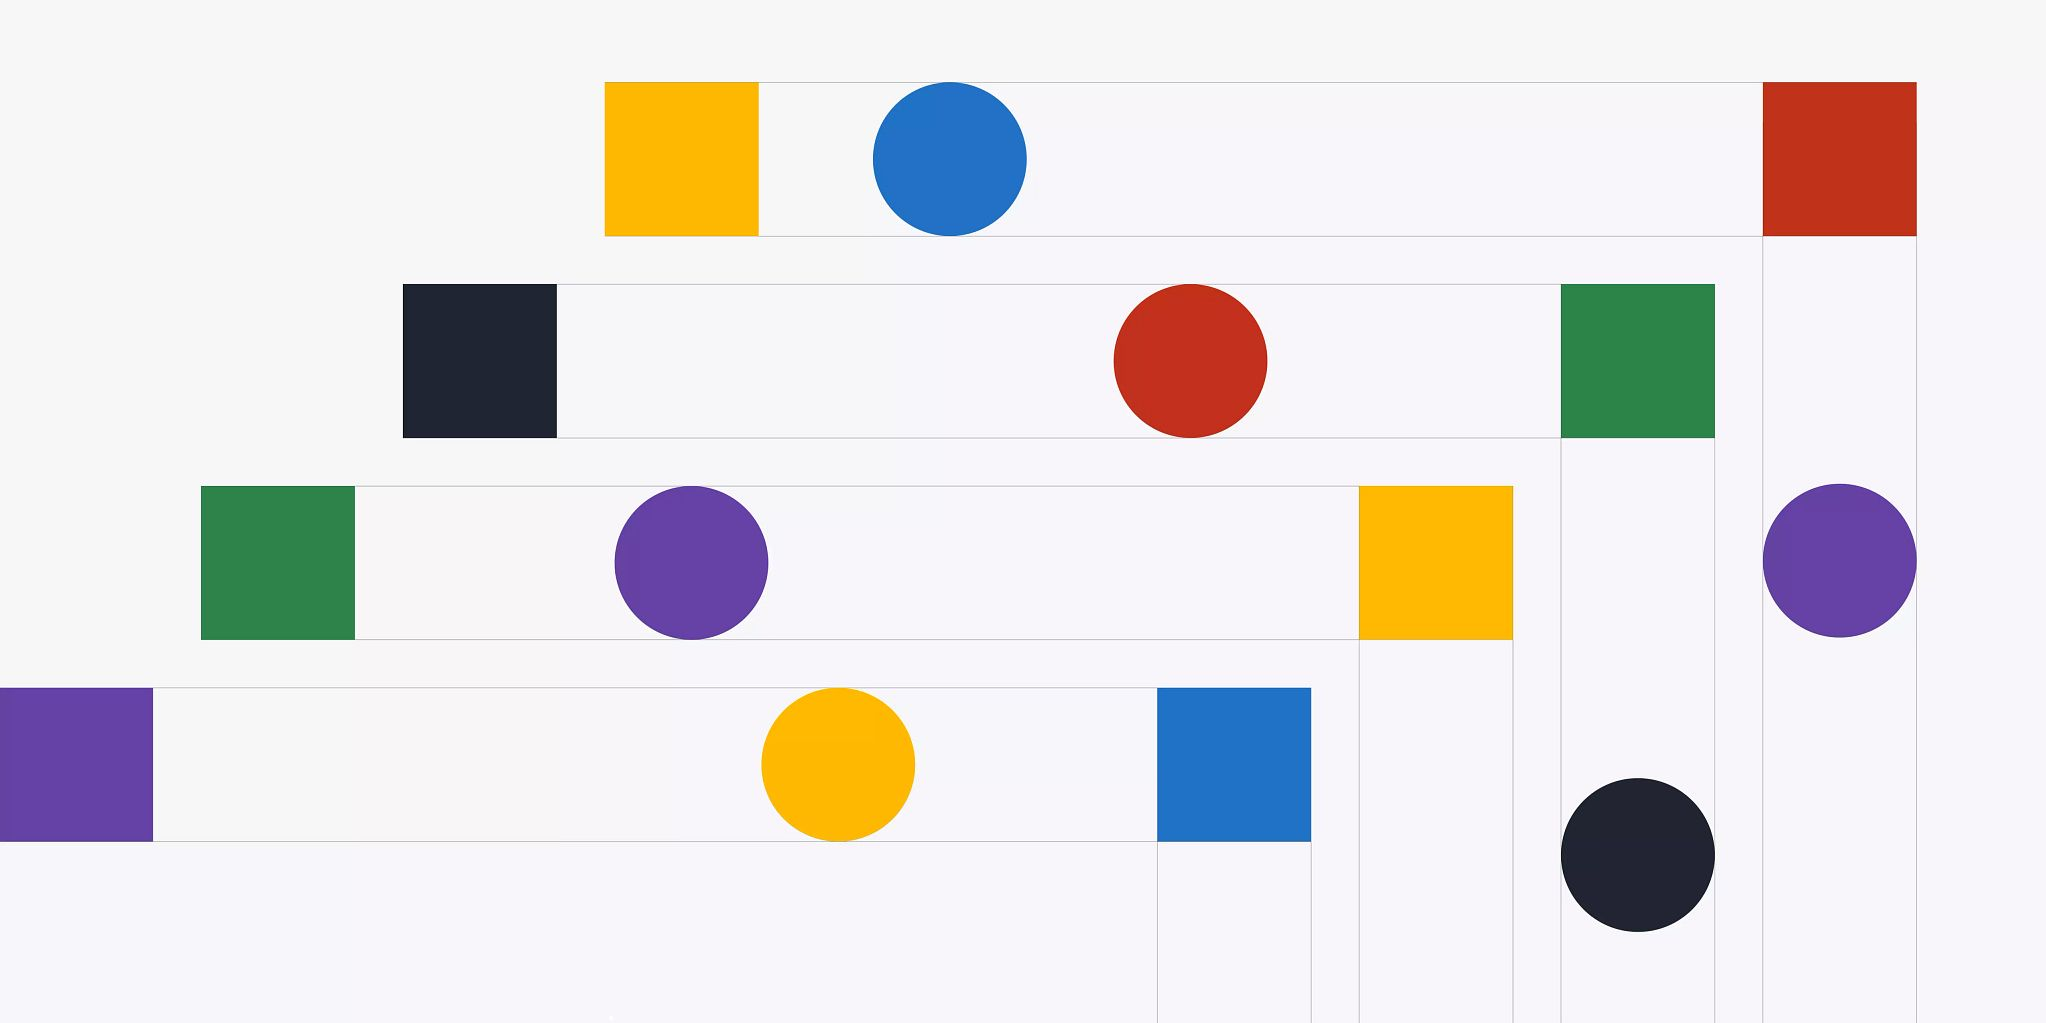 Various, solid-colored squares and circles that are depicted moving through four